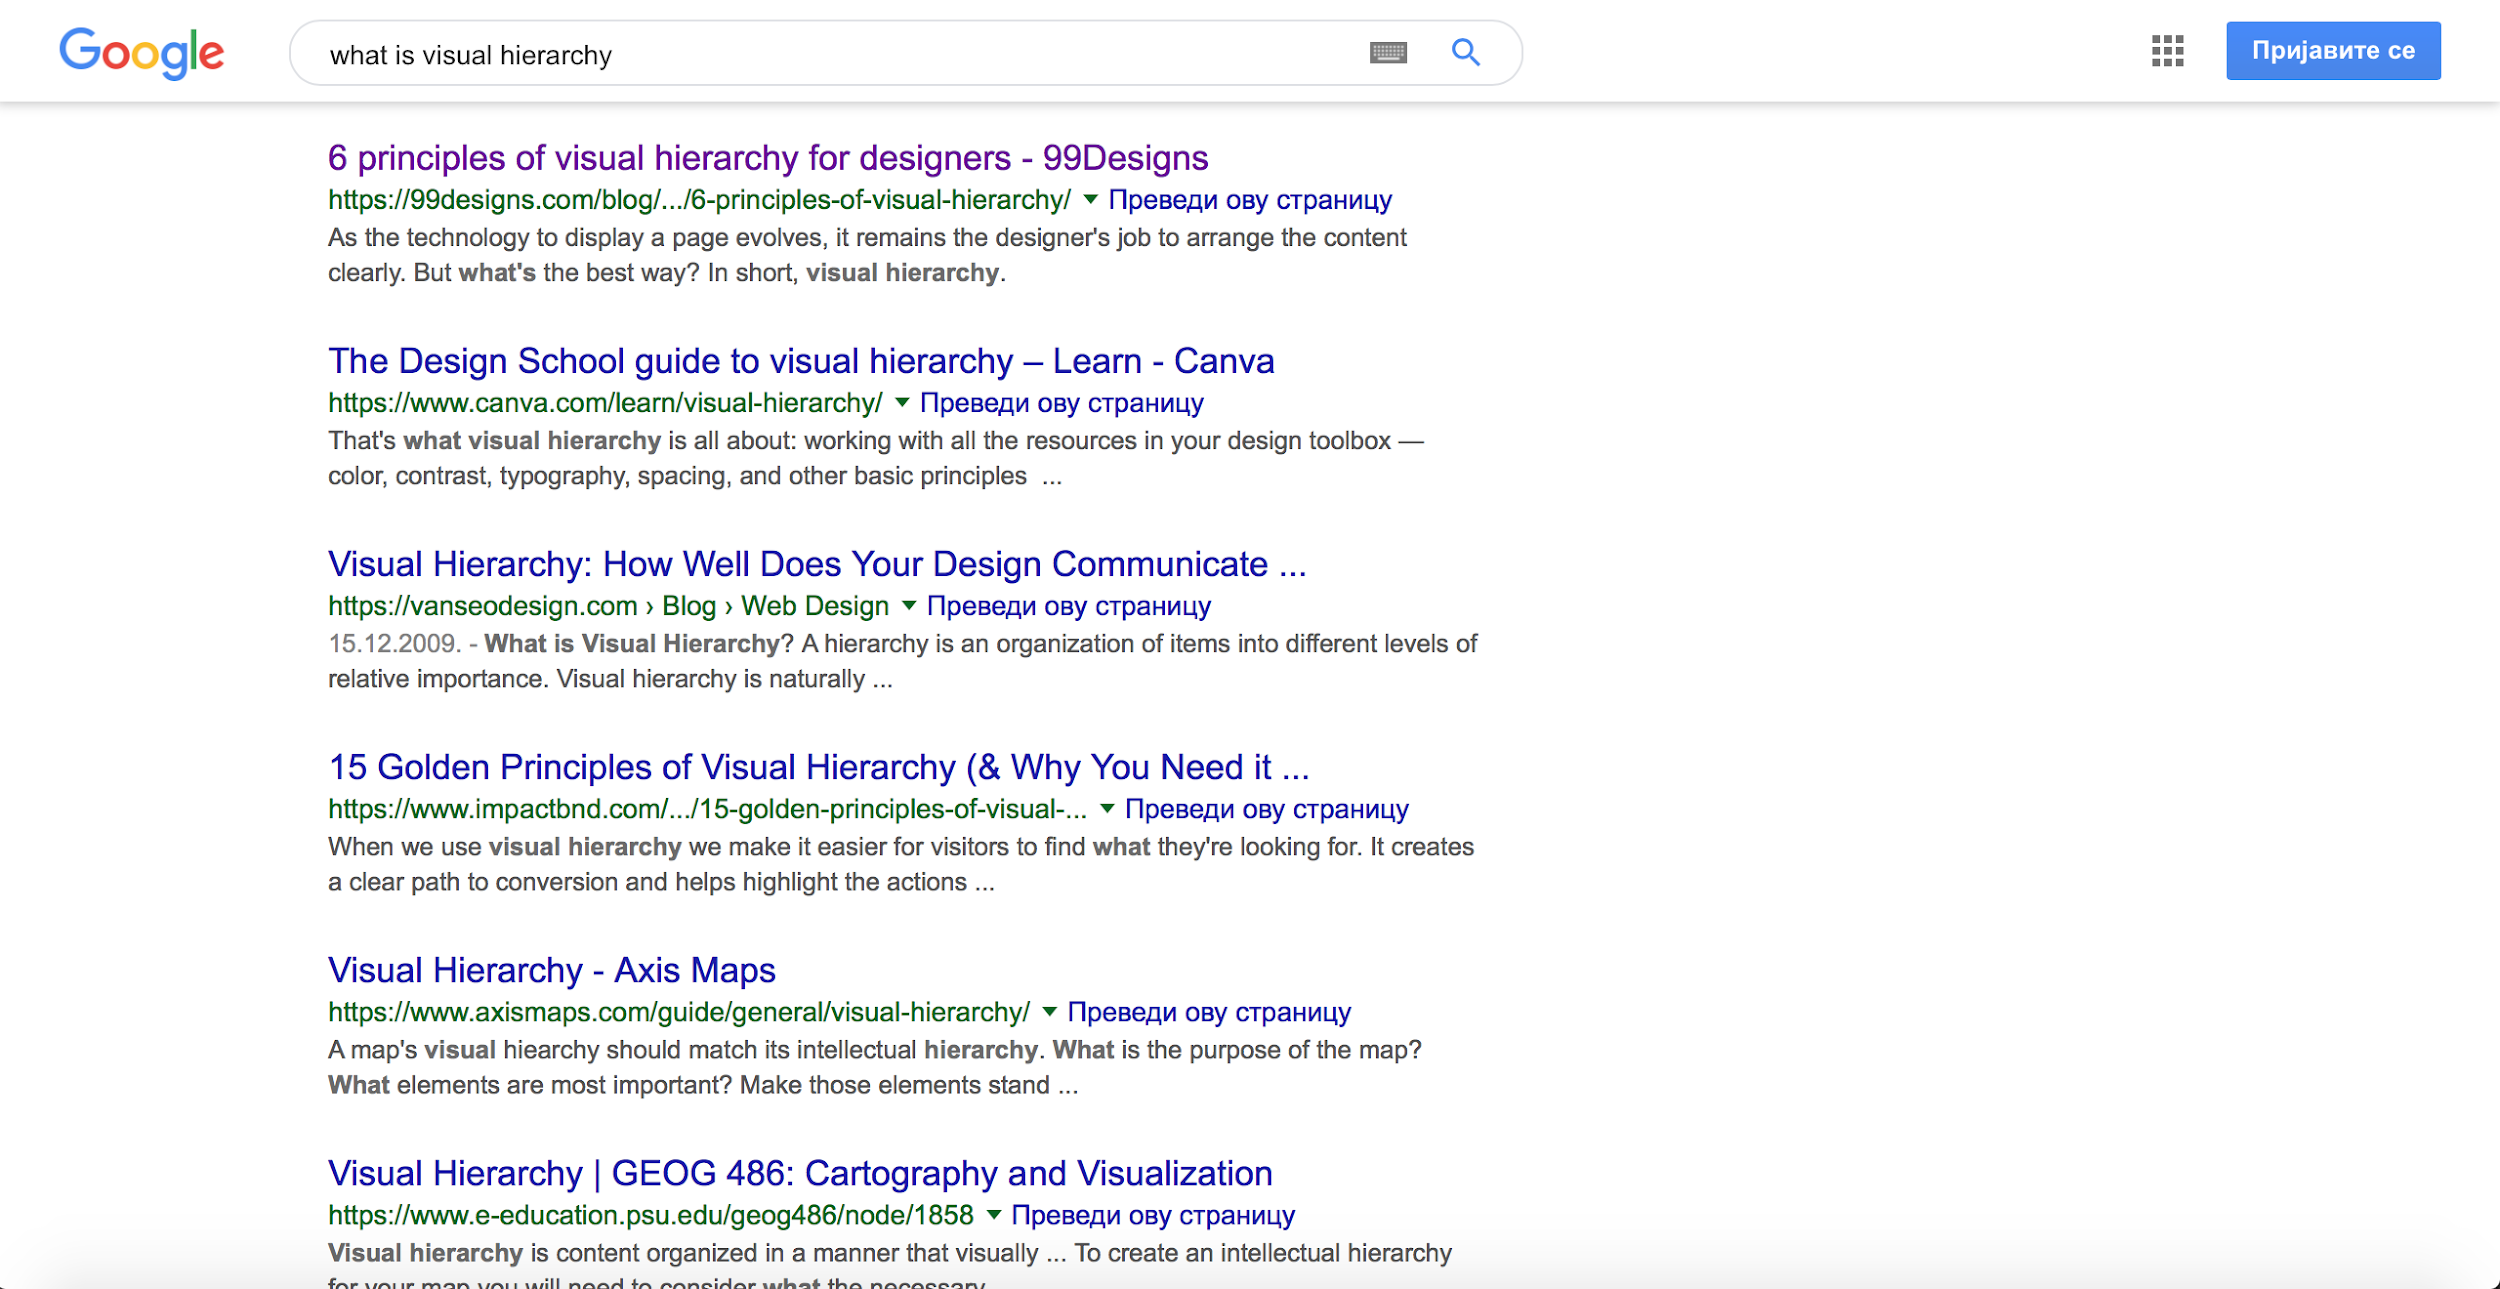 Google's UI design patterns leverage visual hierarchy principles